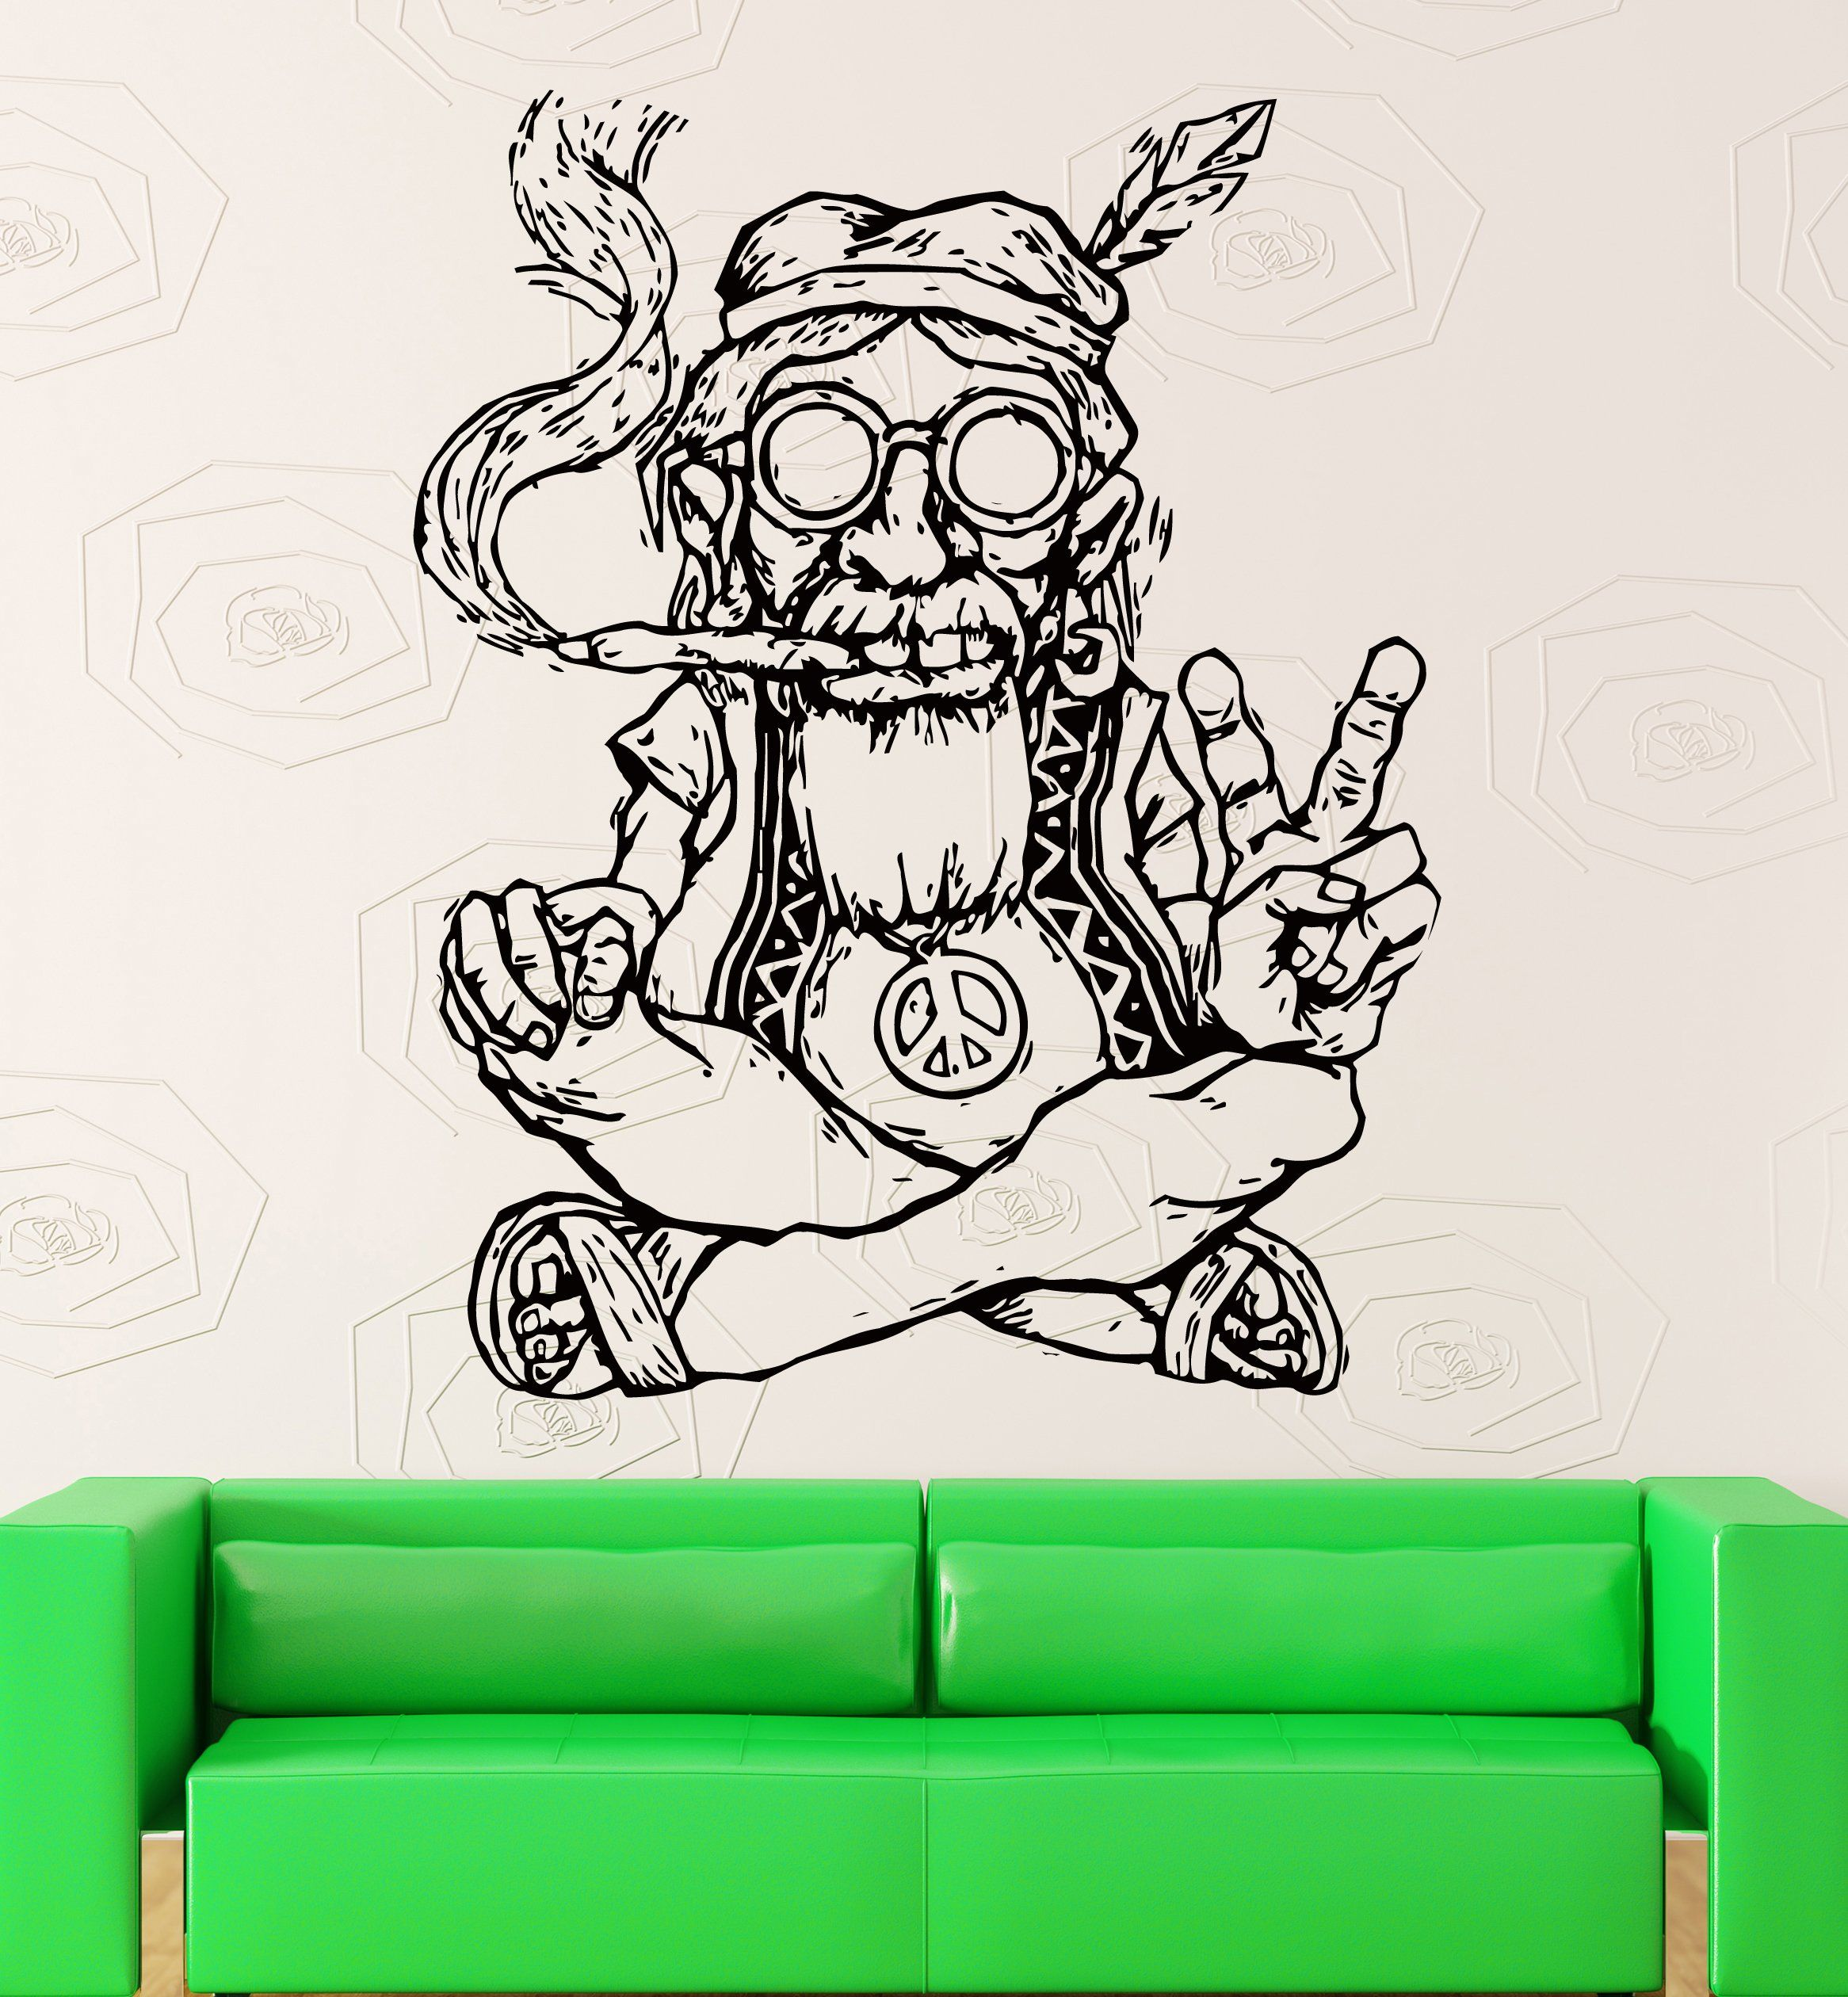 Crystal Emotion Wall Stickers Vinyl Decal Weed Marijuana Old Hippie Smoking  Weed Marijuana Funny Decor For Living Room Best Decoration For Room